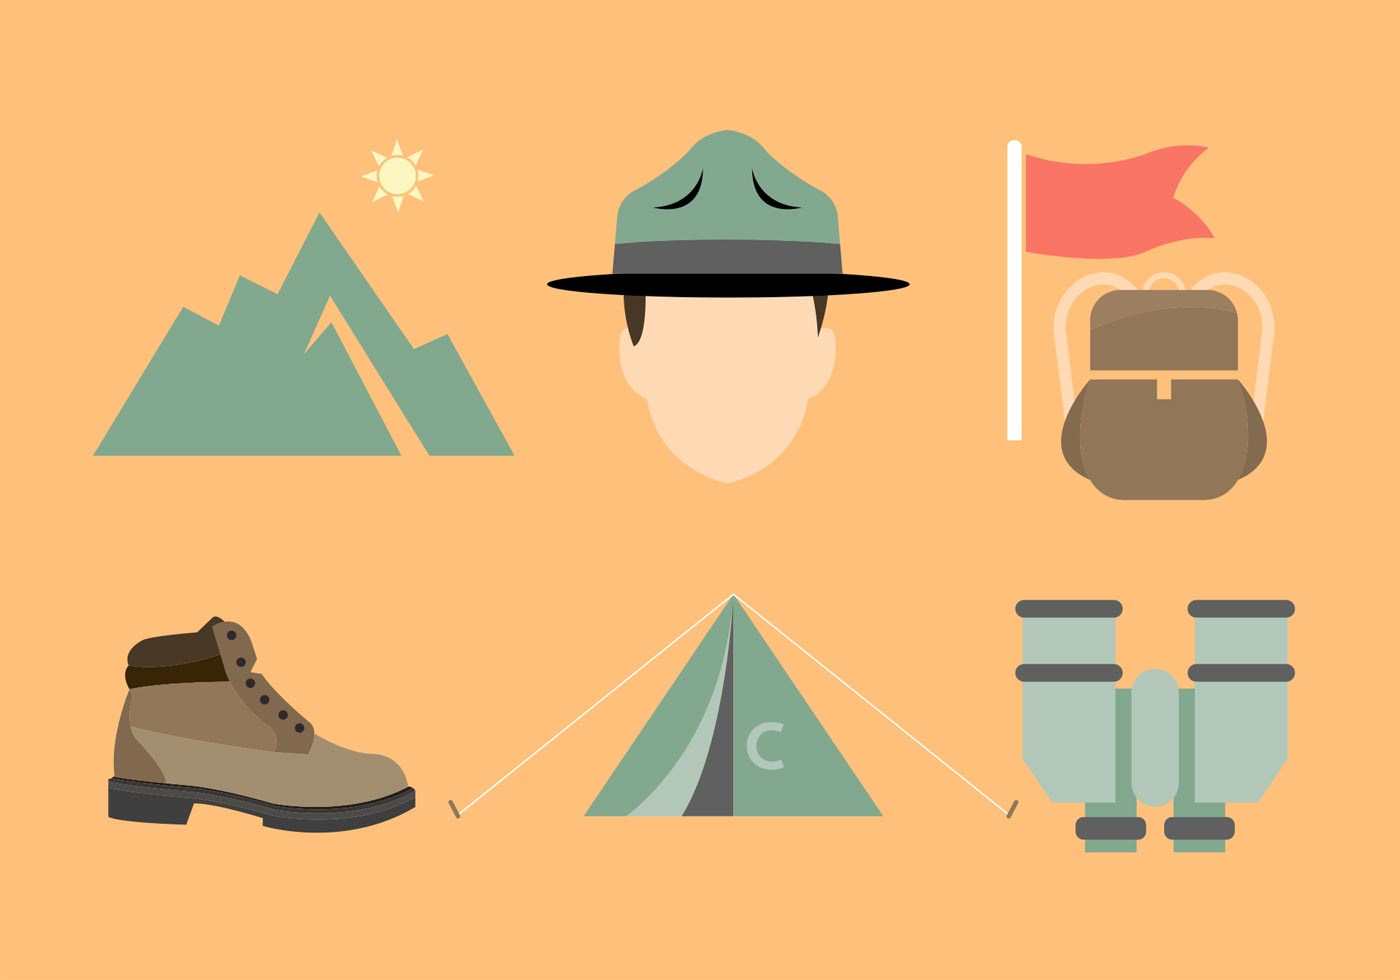 Boot Camp Vector Elements - Download Free Vector Art ...